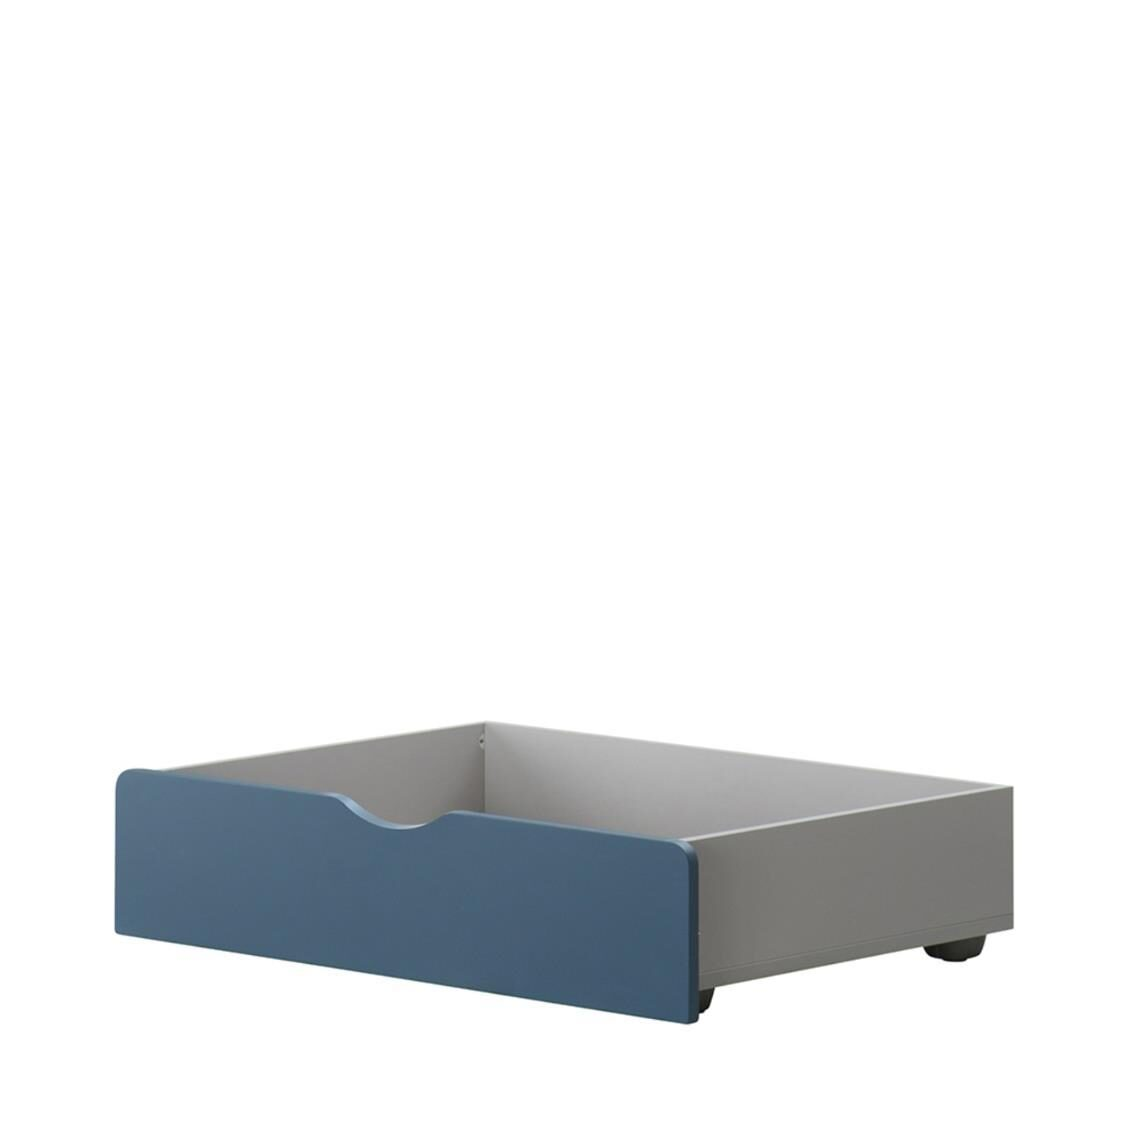 Tinkle Pop Bed Drawer KB Blue